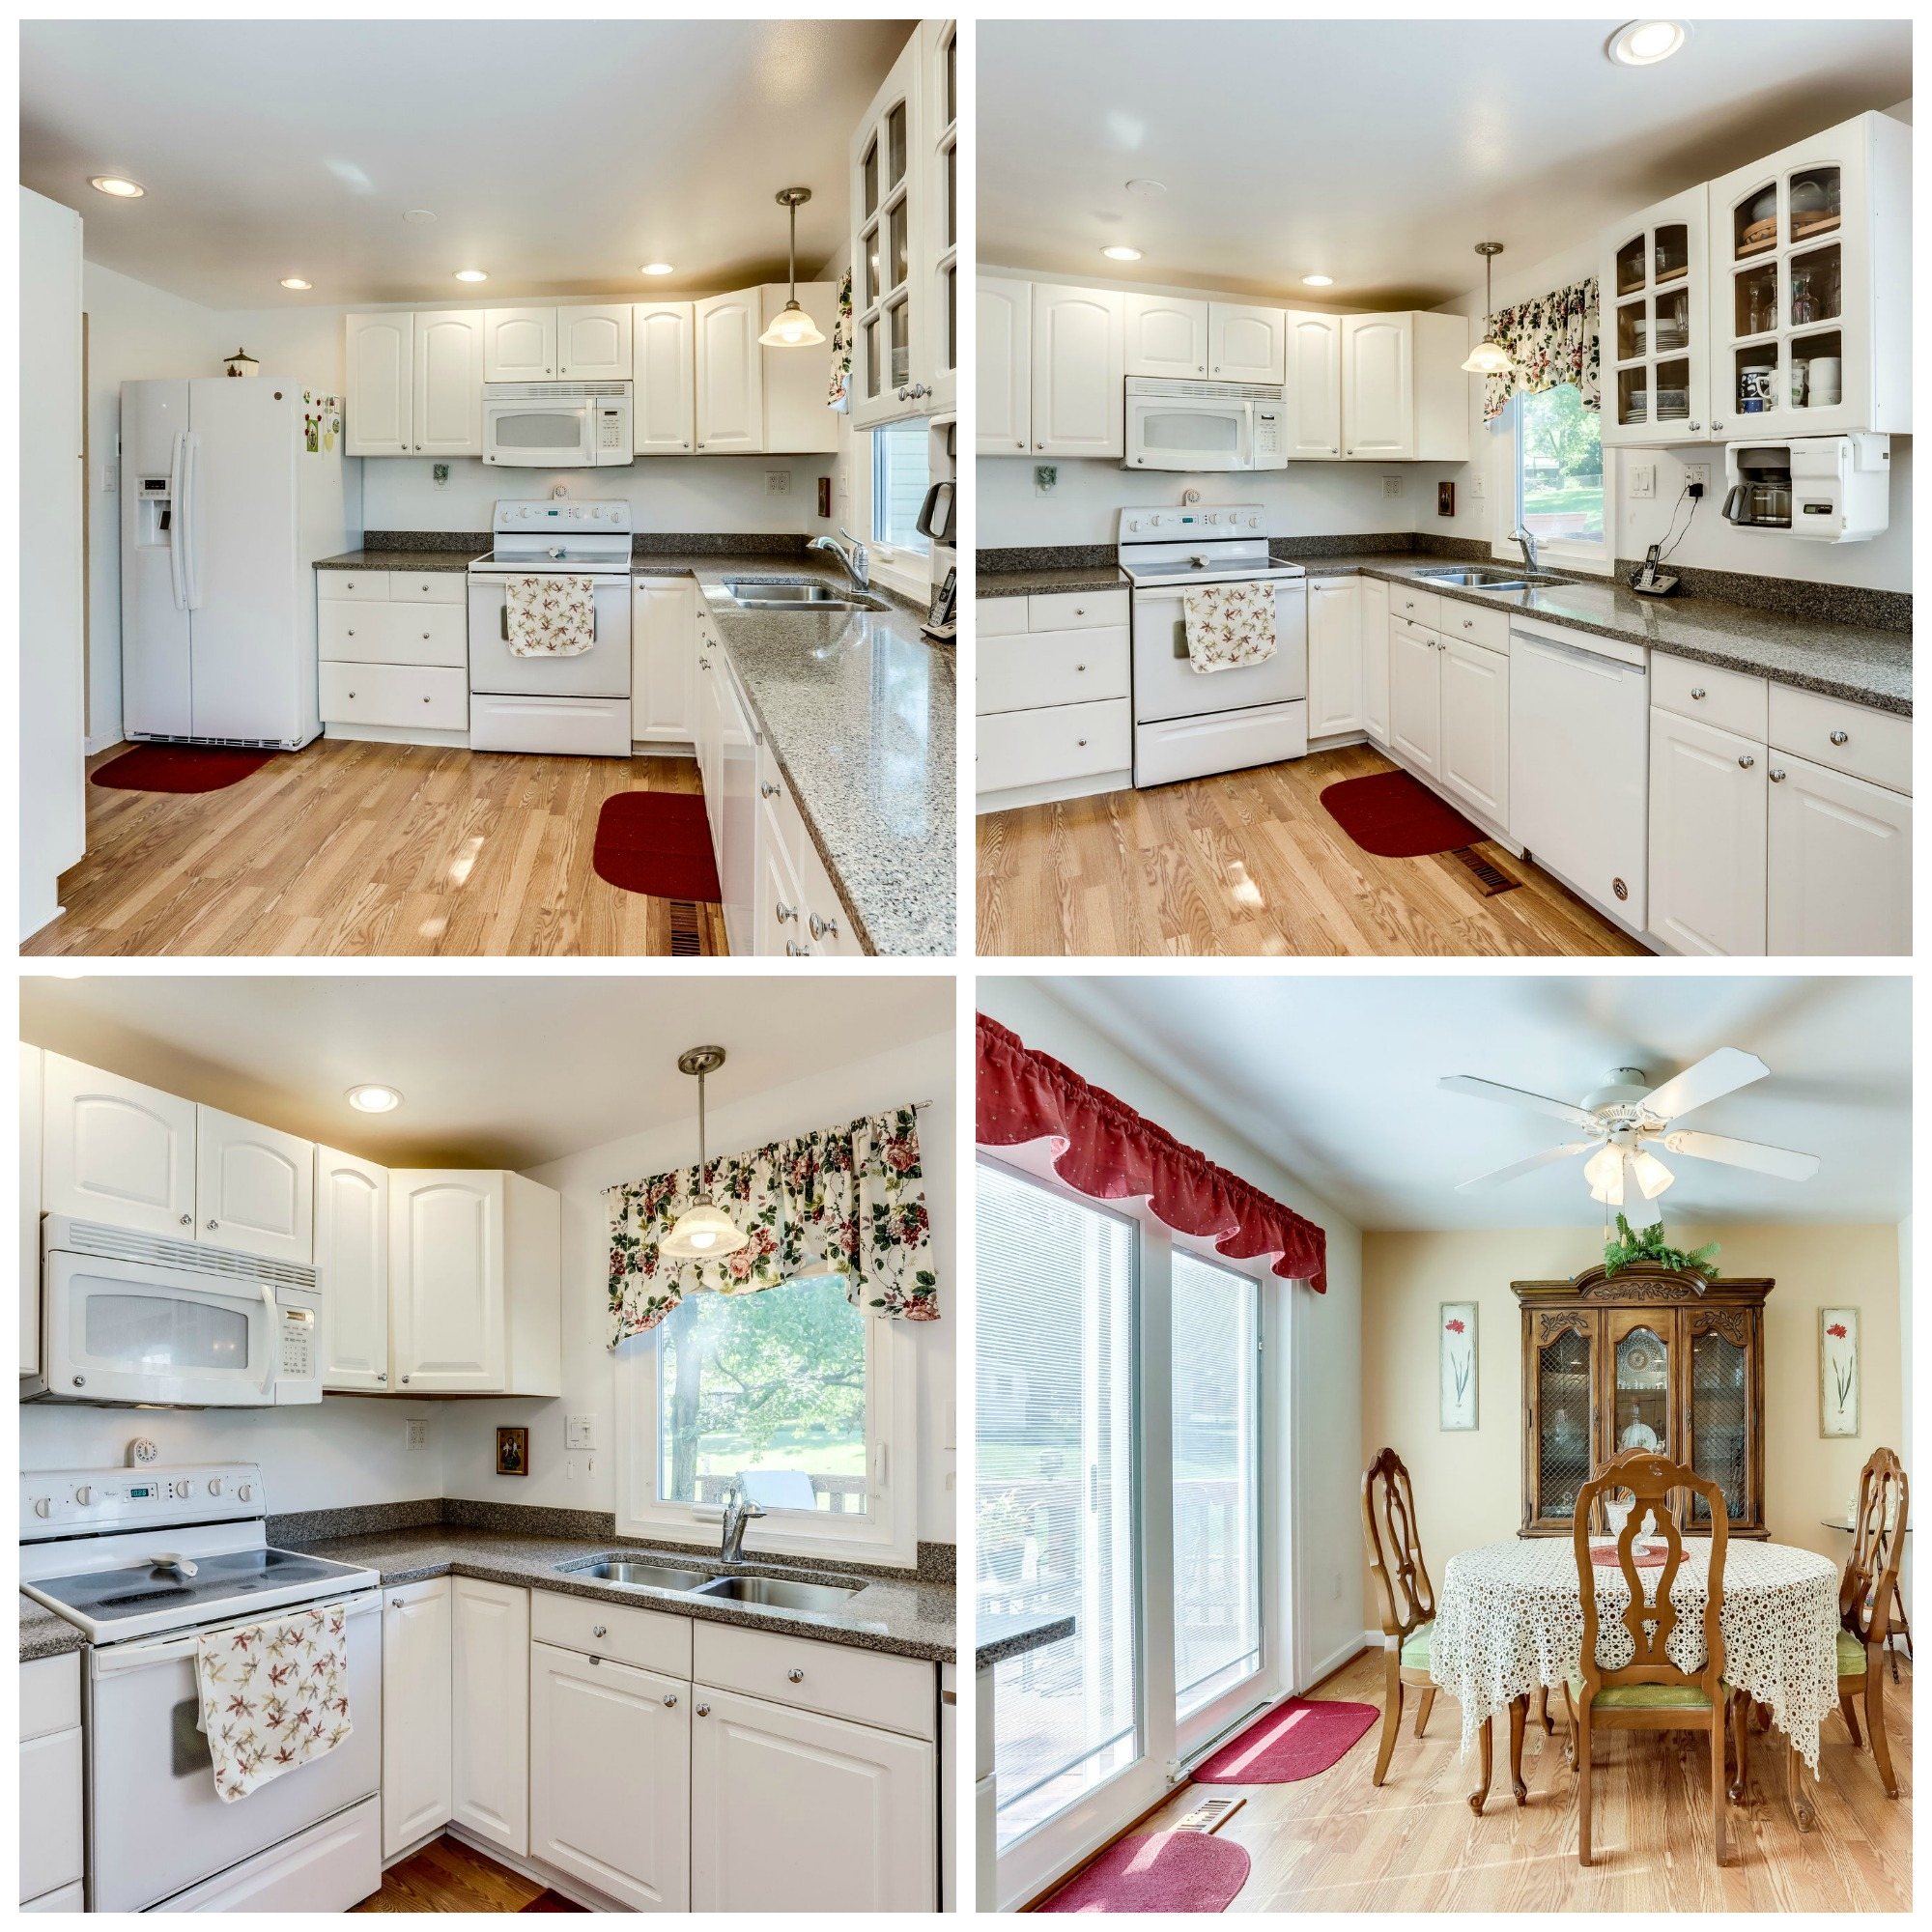 128 N Garfield- Sterling Park- Kitchen